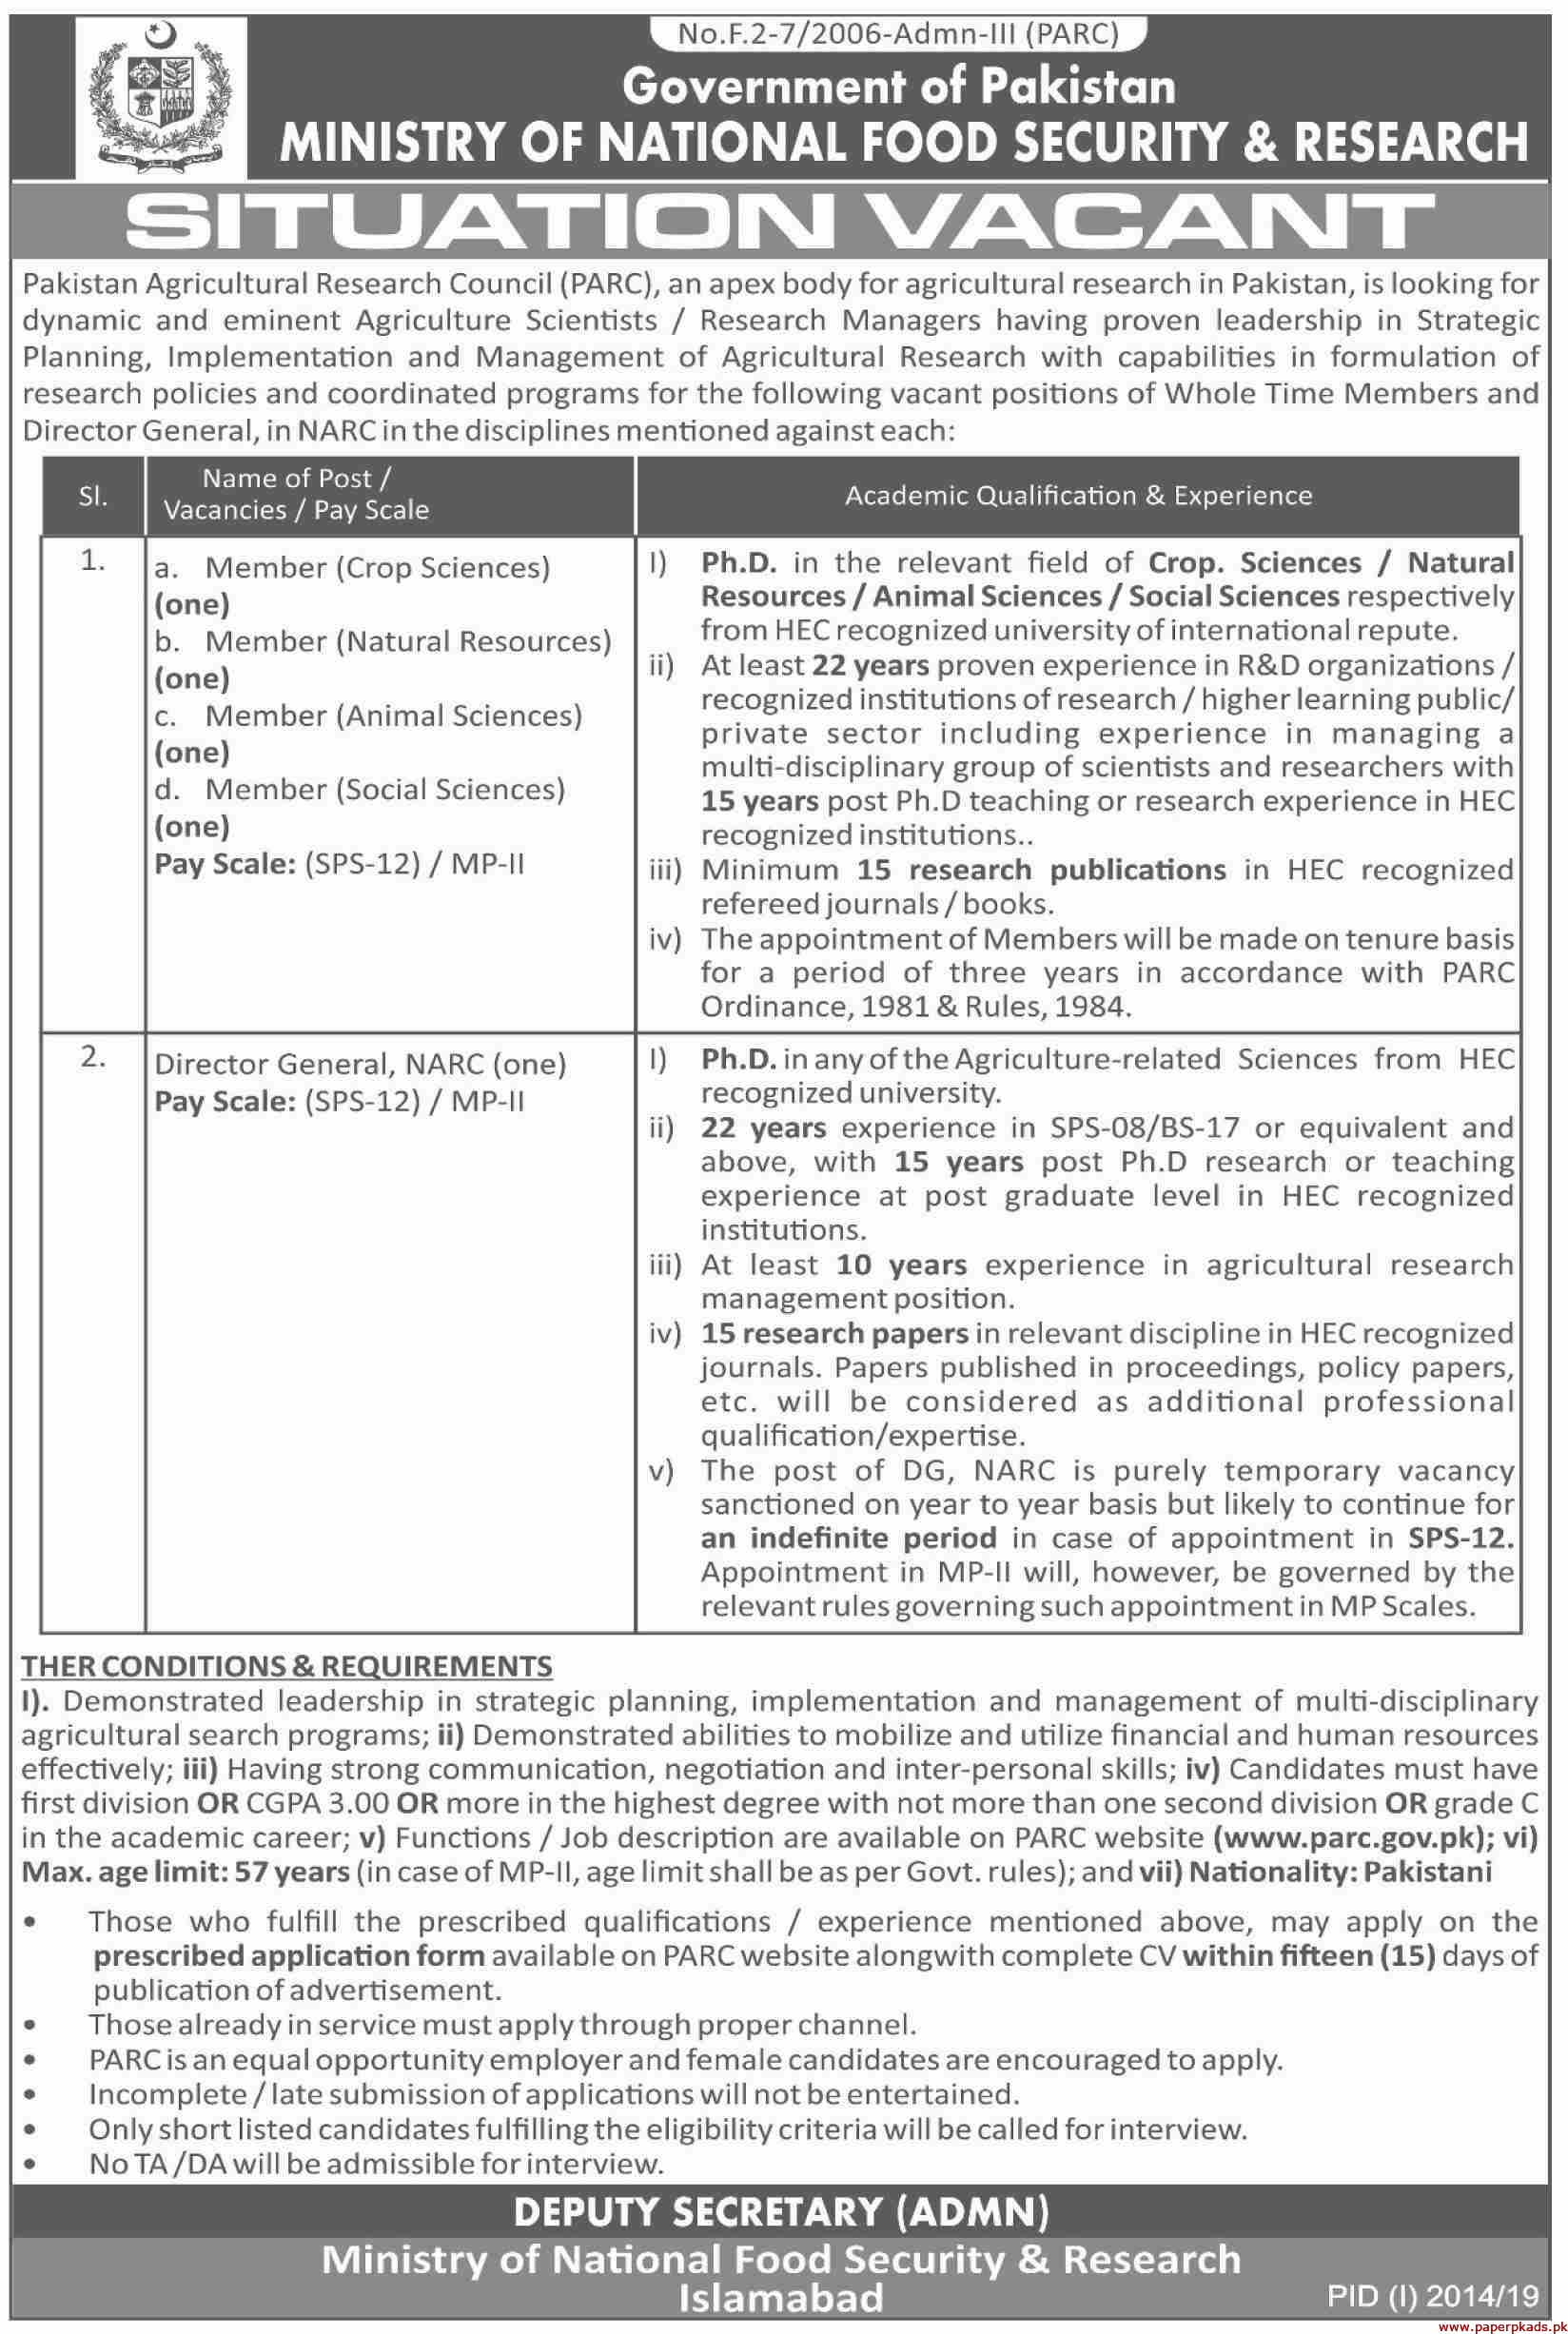 Ministry of National Food Security & Research Jobs 2019 Latest